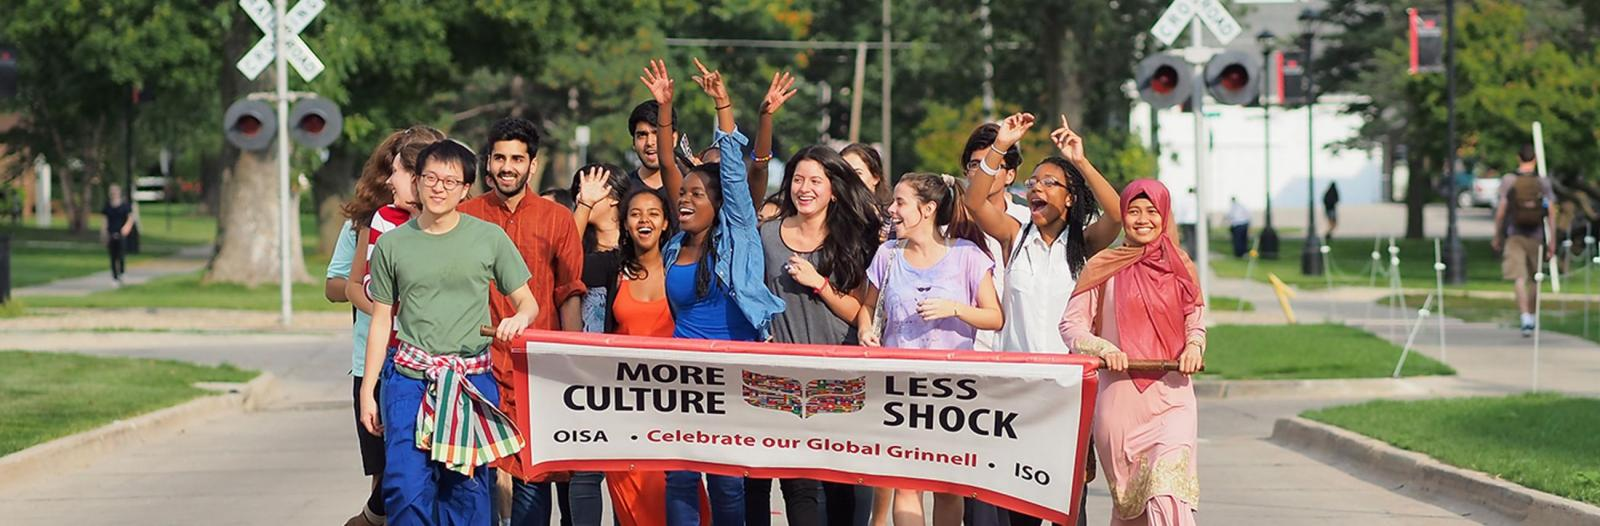 diverse students holding banner that says more culture, less shock, celebrate our global Grinnell, OISA, ISO